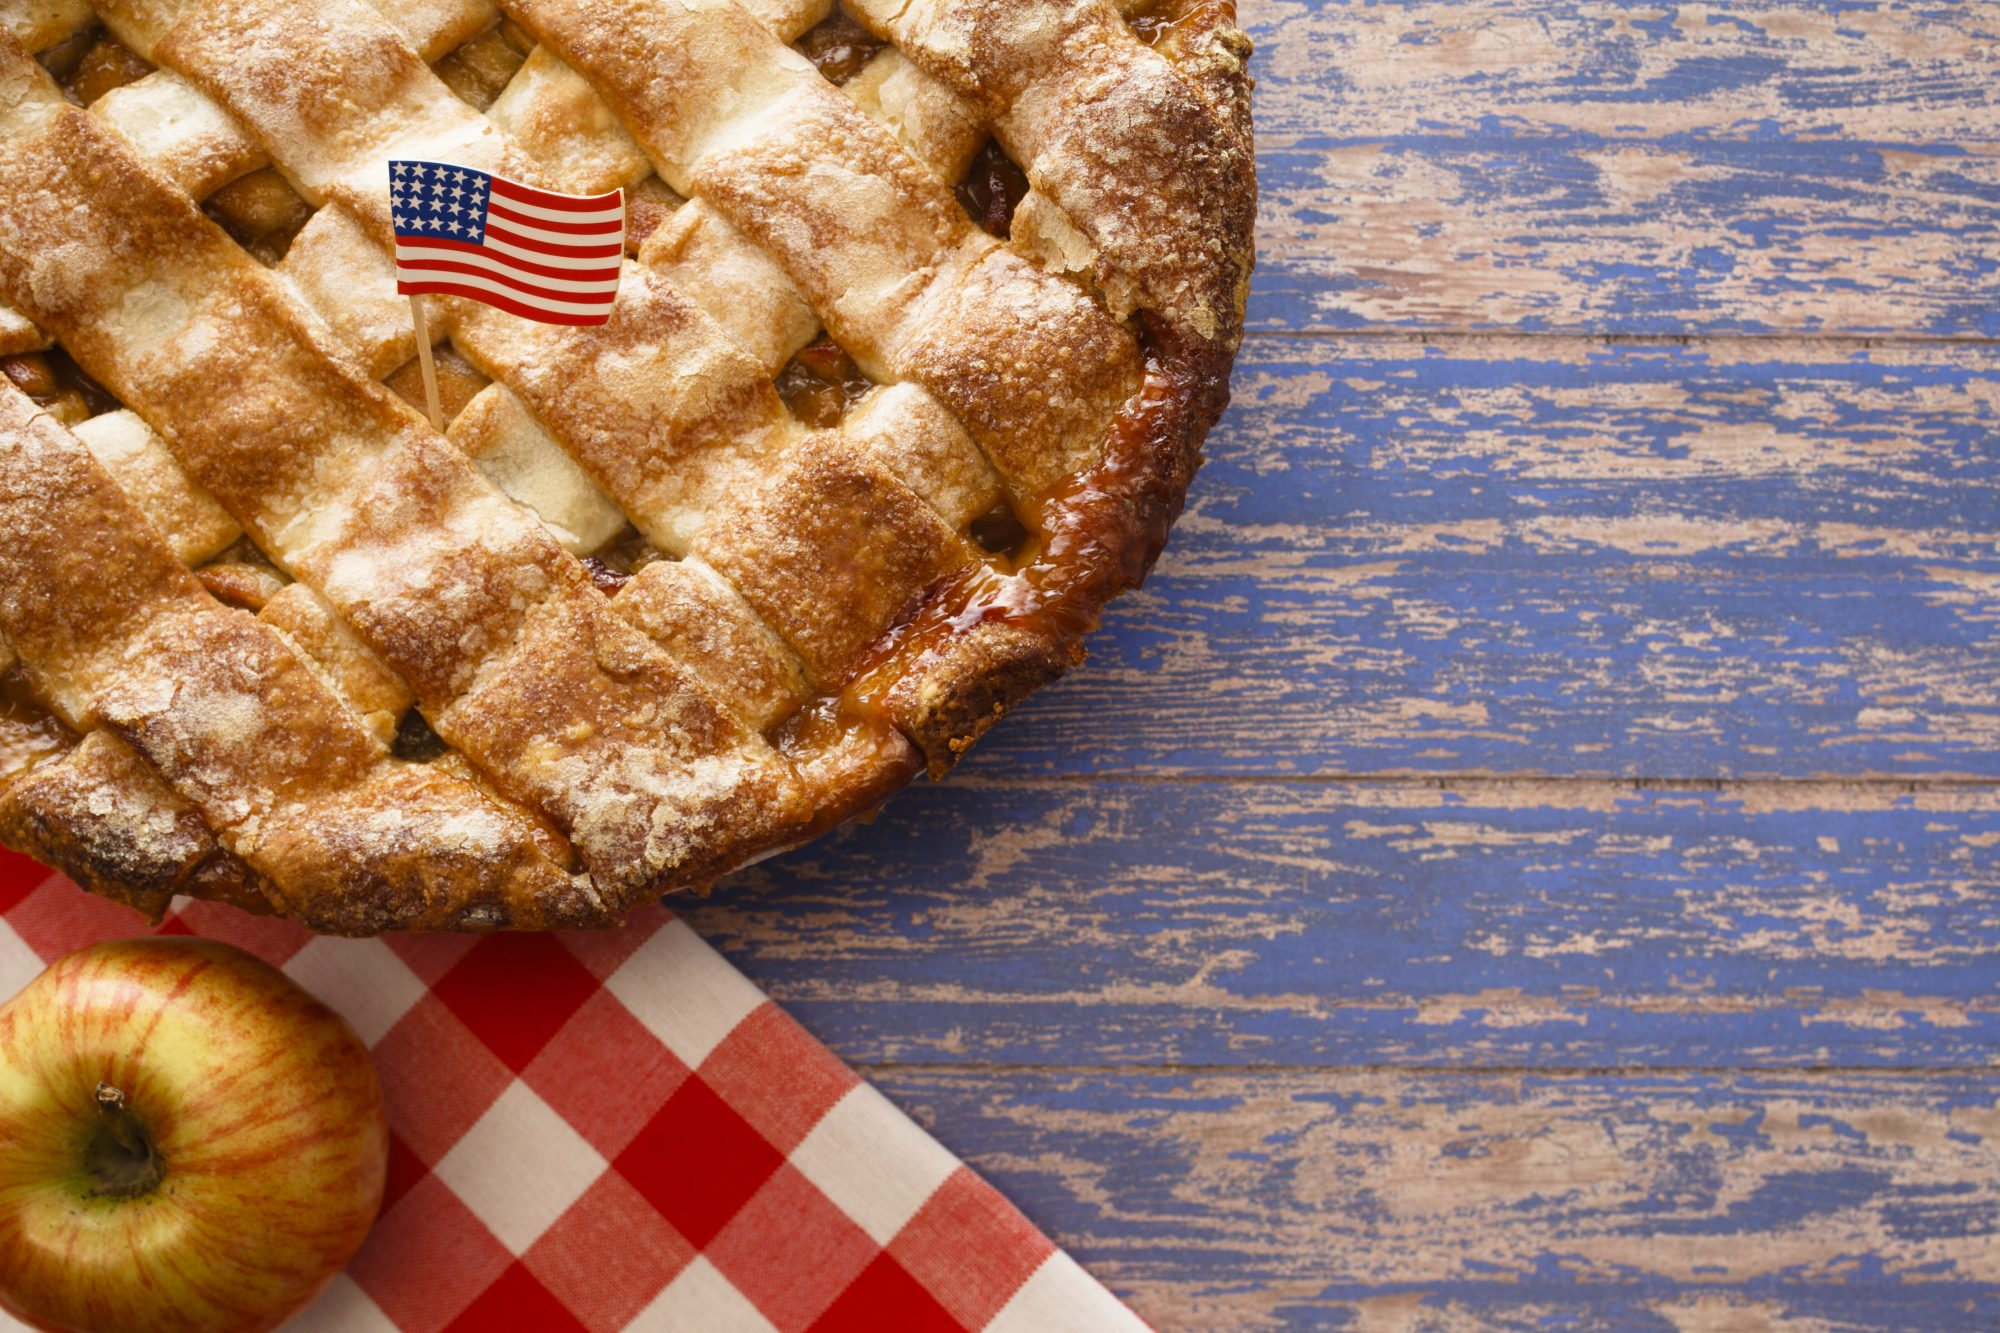 Apple Pie with American Flag